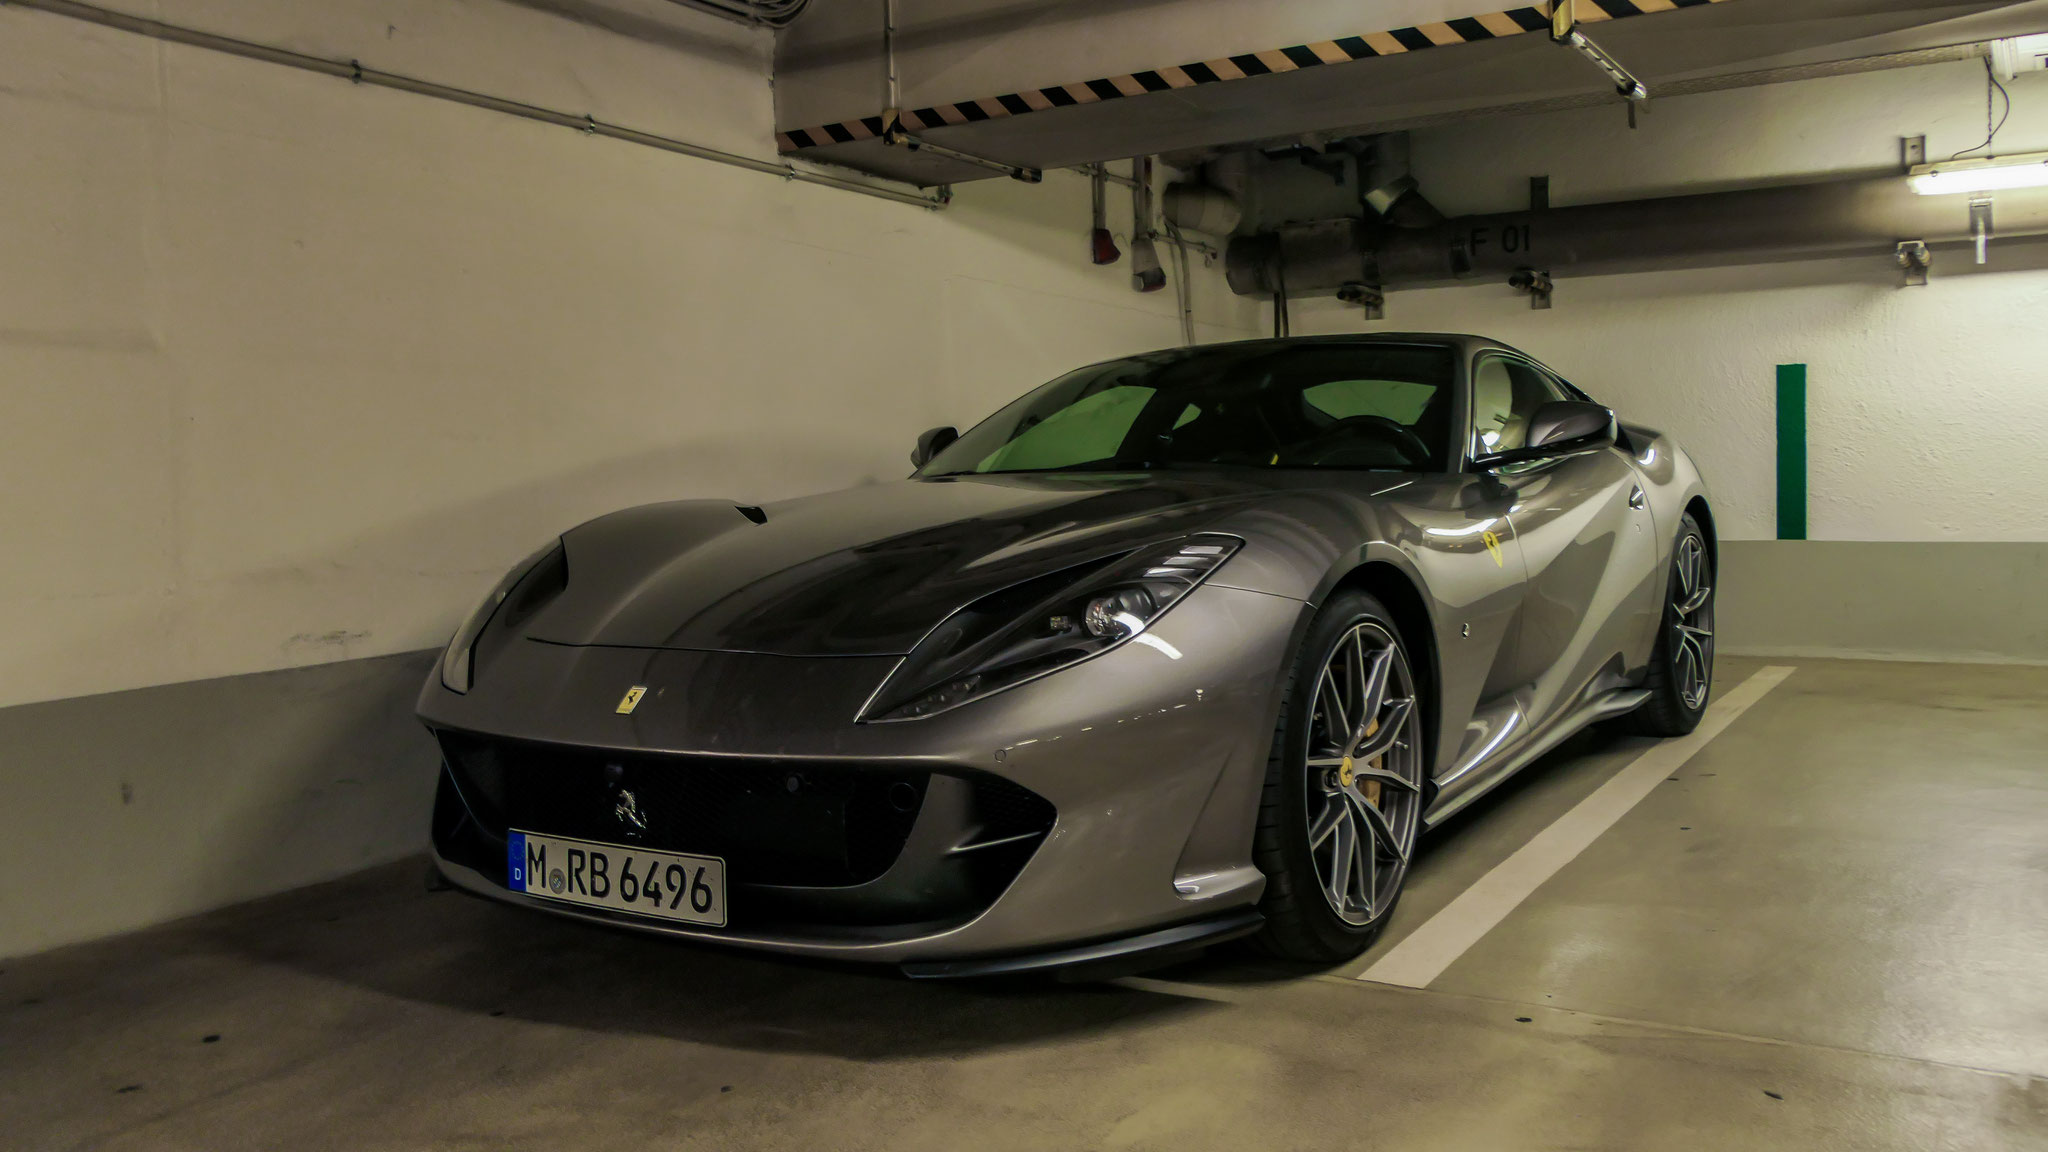 Ferrari 812 Superfast - M-RB-6496